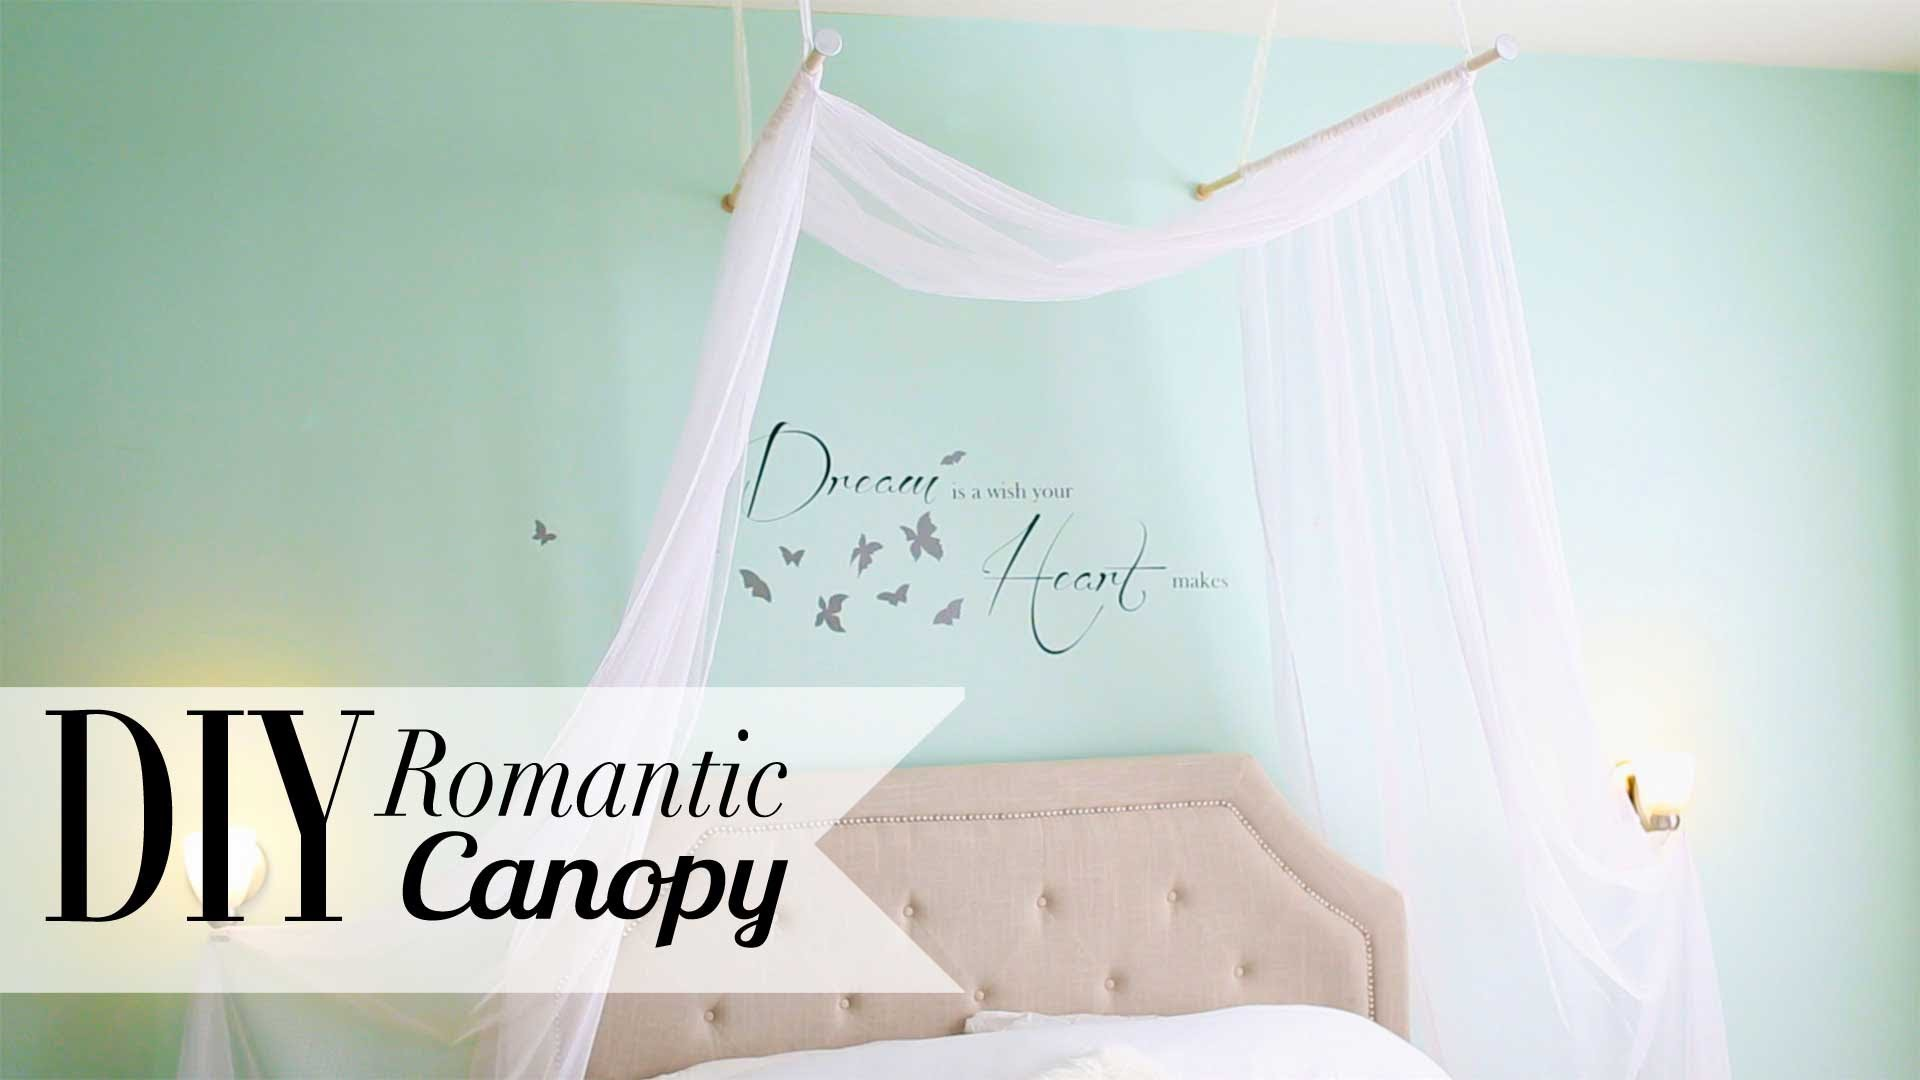 DIY Romantic Bedroom Canopy by ANNEORSHINE